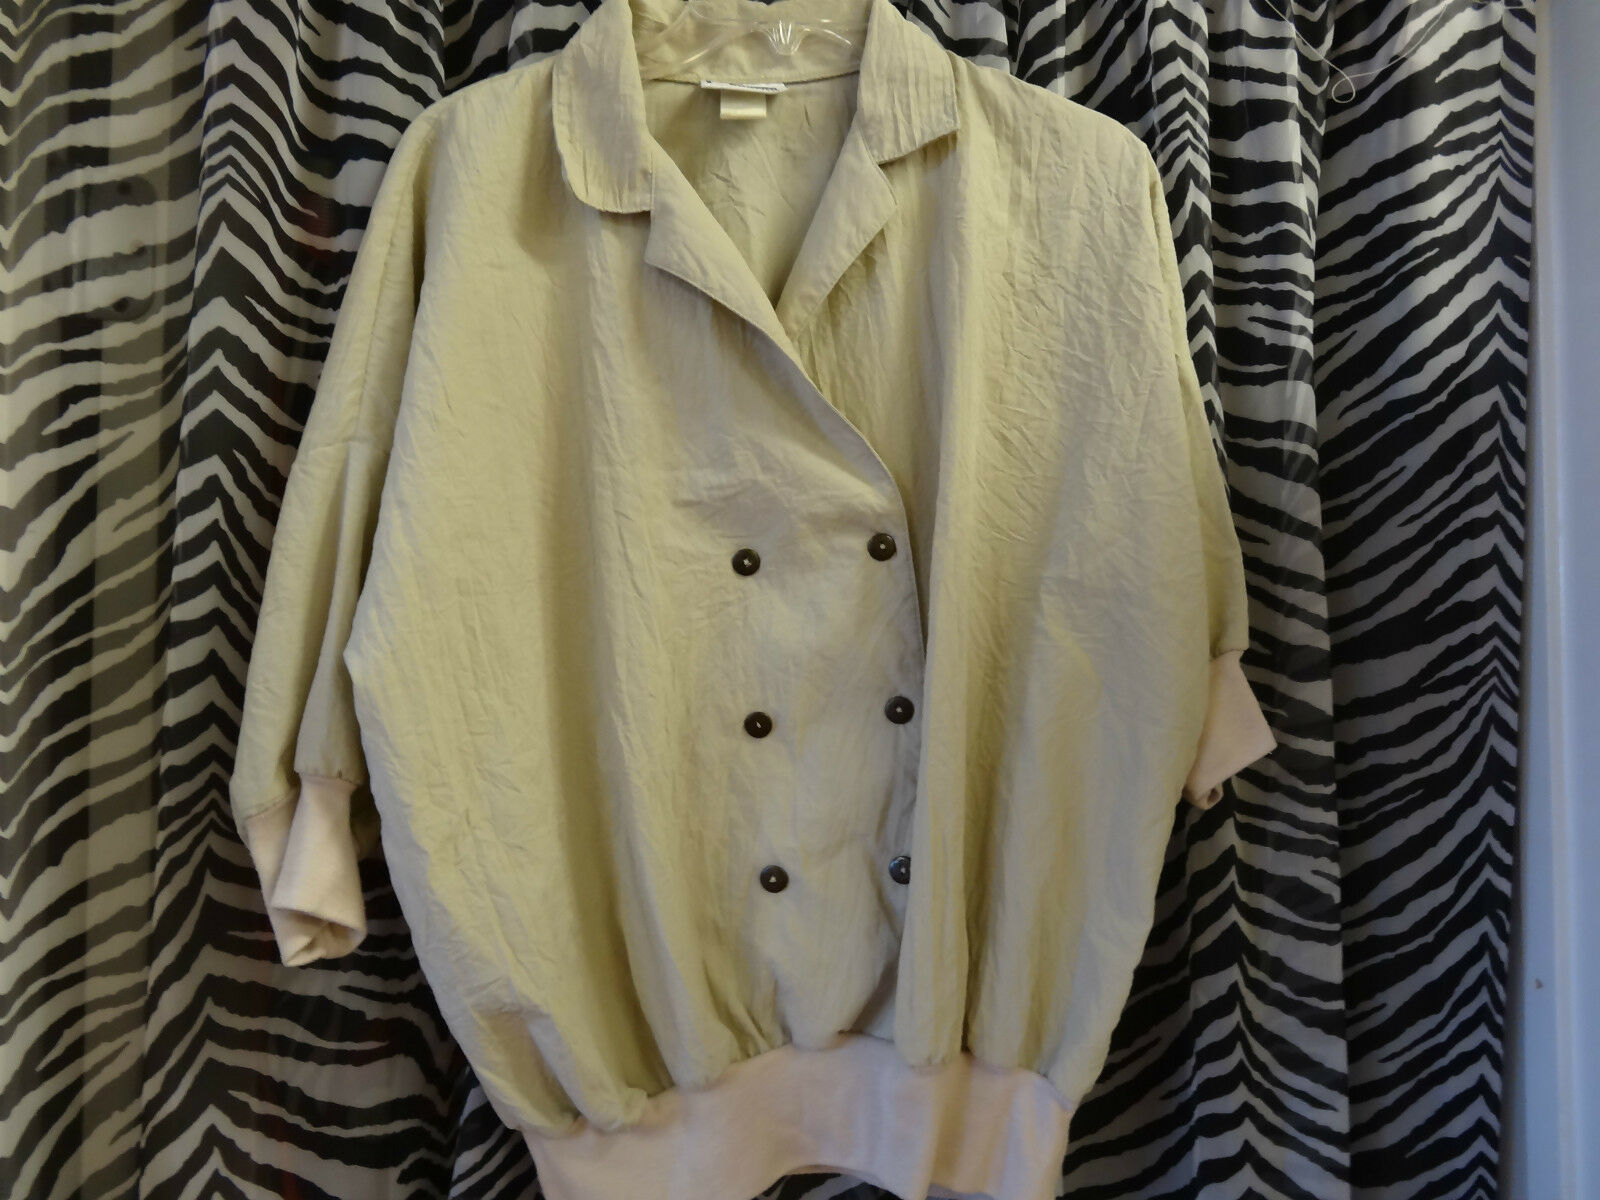 CORTIVA Beige Short Sleeve Blouse Button Front w Collar L@@K @ Description Sz.L